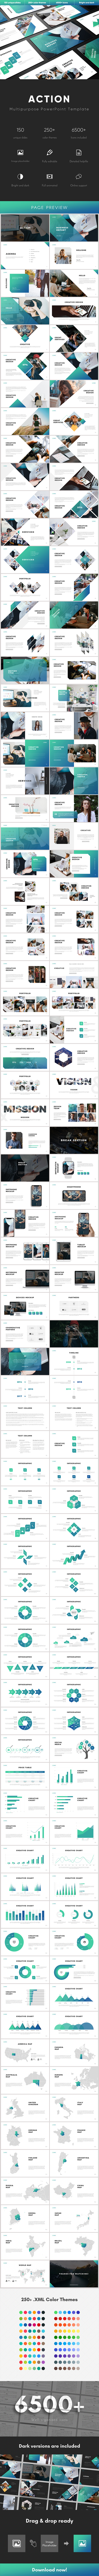 Action Multipurpose PowerPoint Template - Business PowerPoint Templates